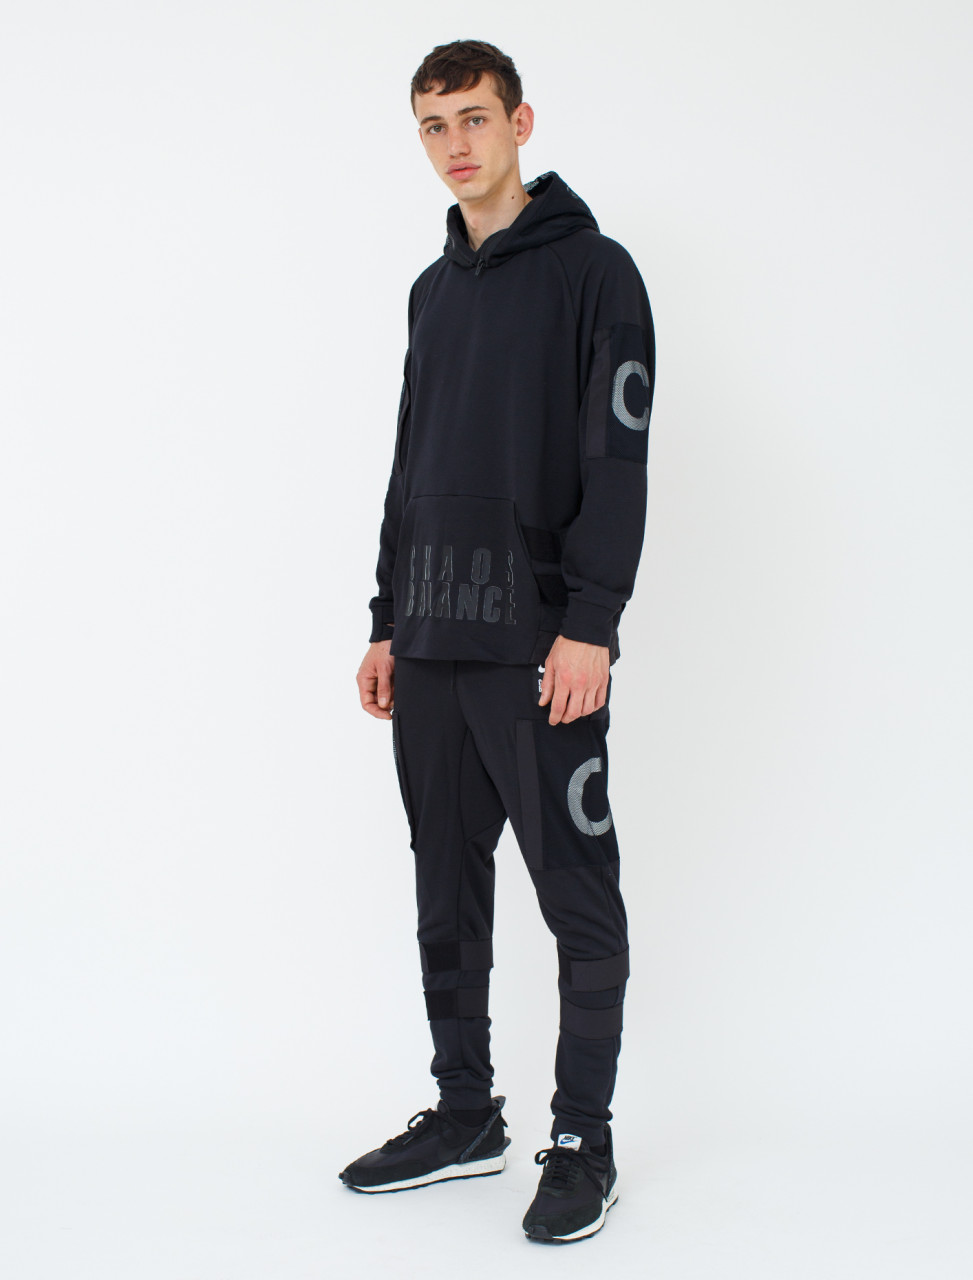 Nike x Undercover Tracksuit